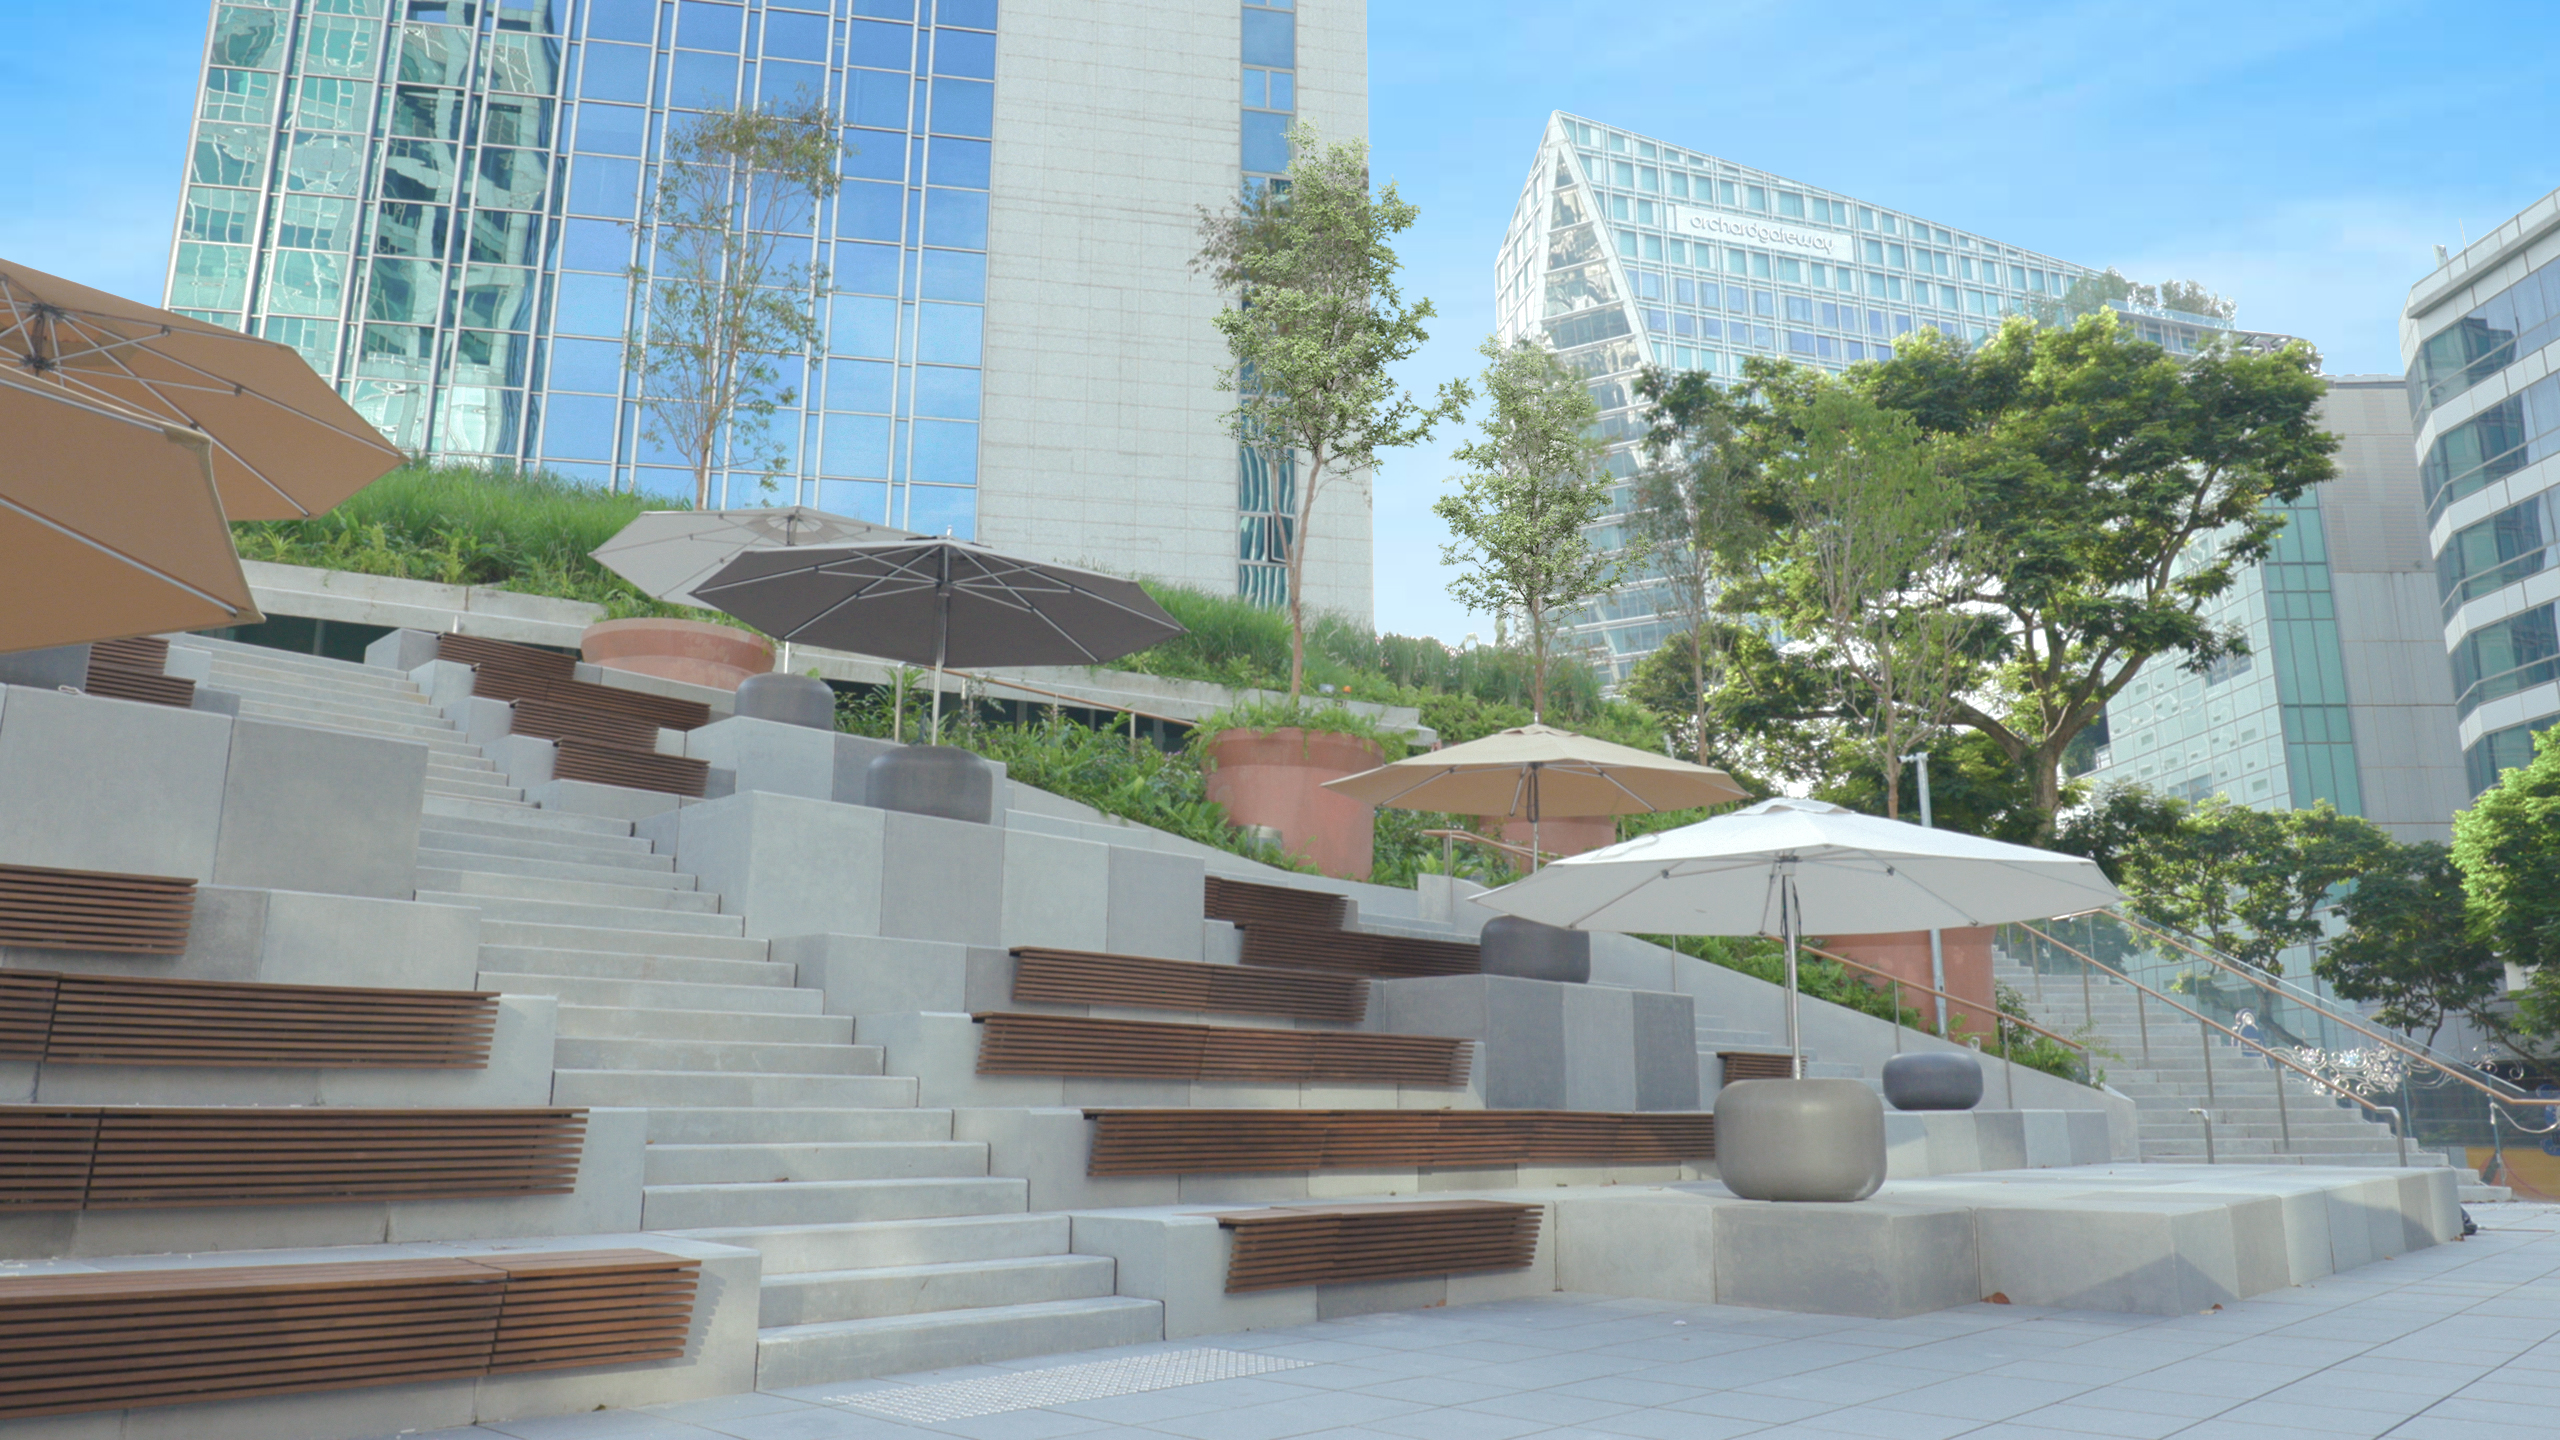 Design Orchard will be located at the junction of Orchard Road and Cairnhill Road. Photo courtesy: STB